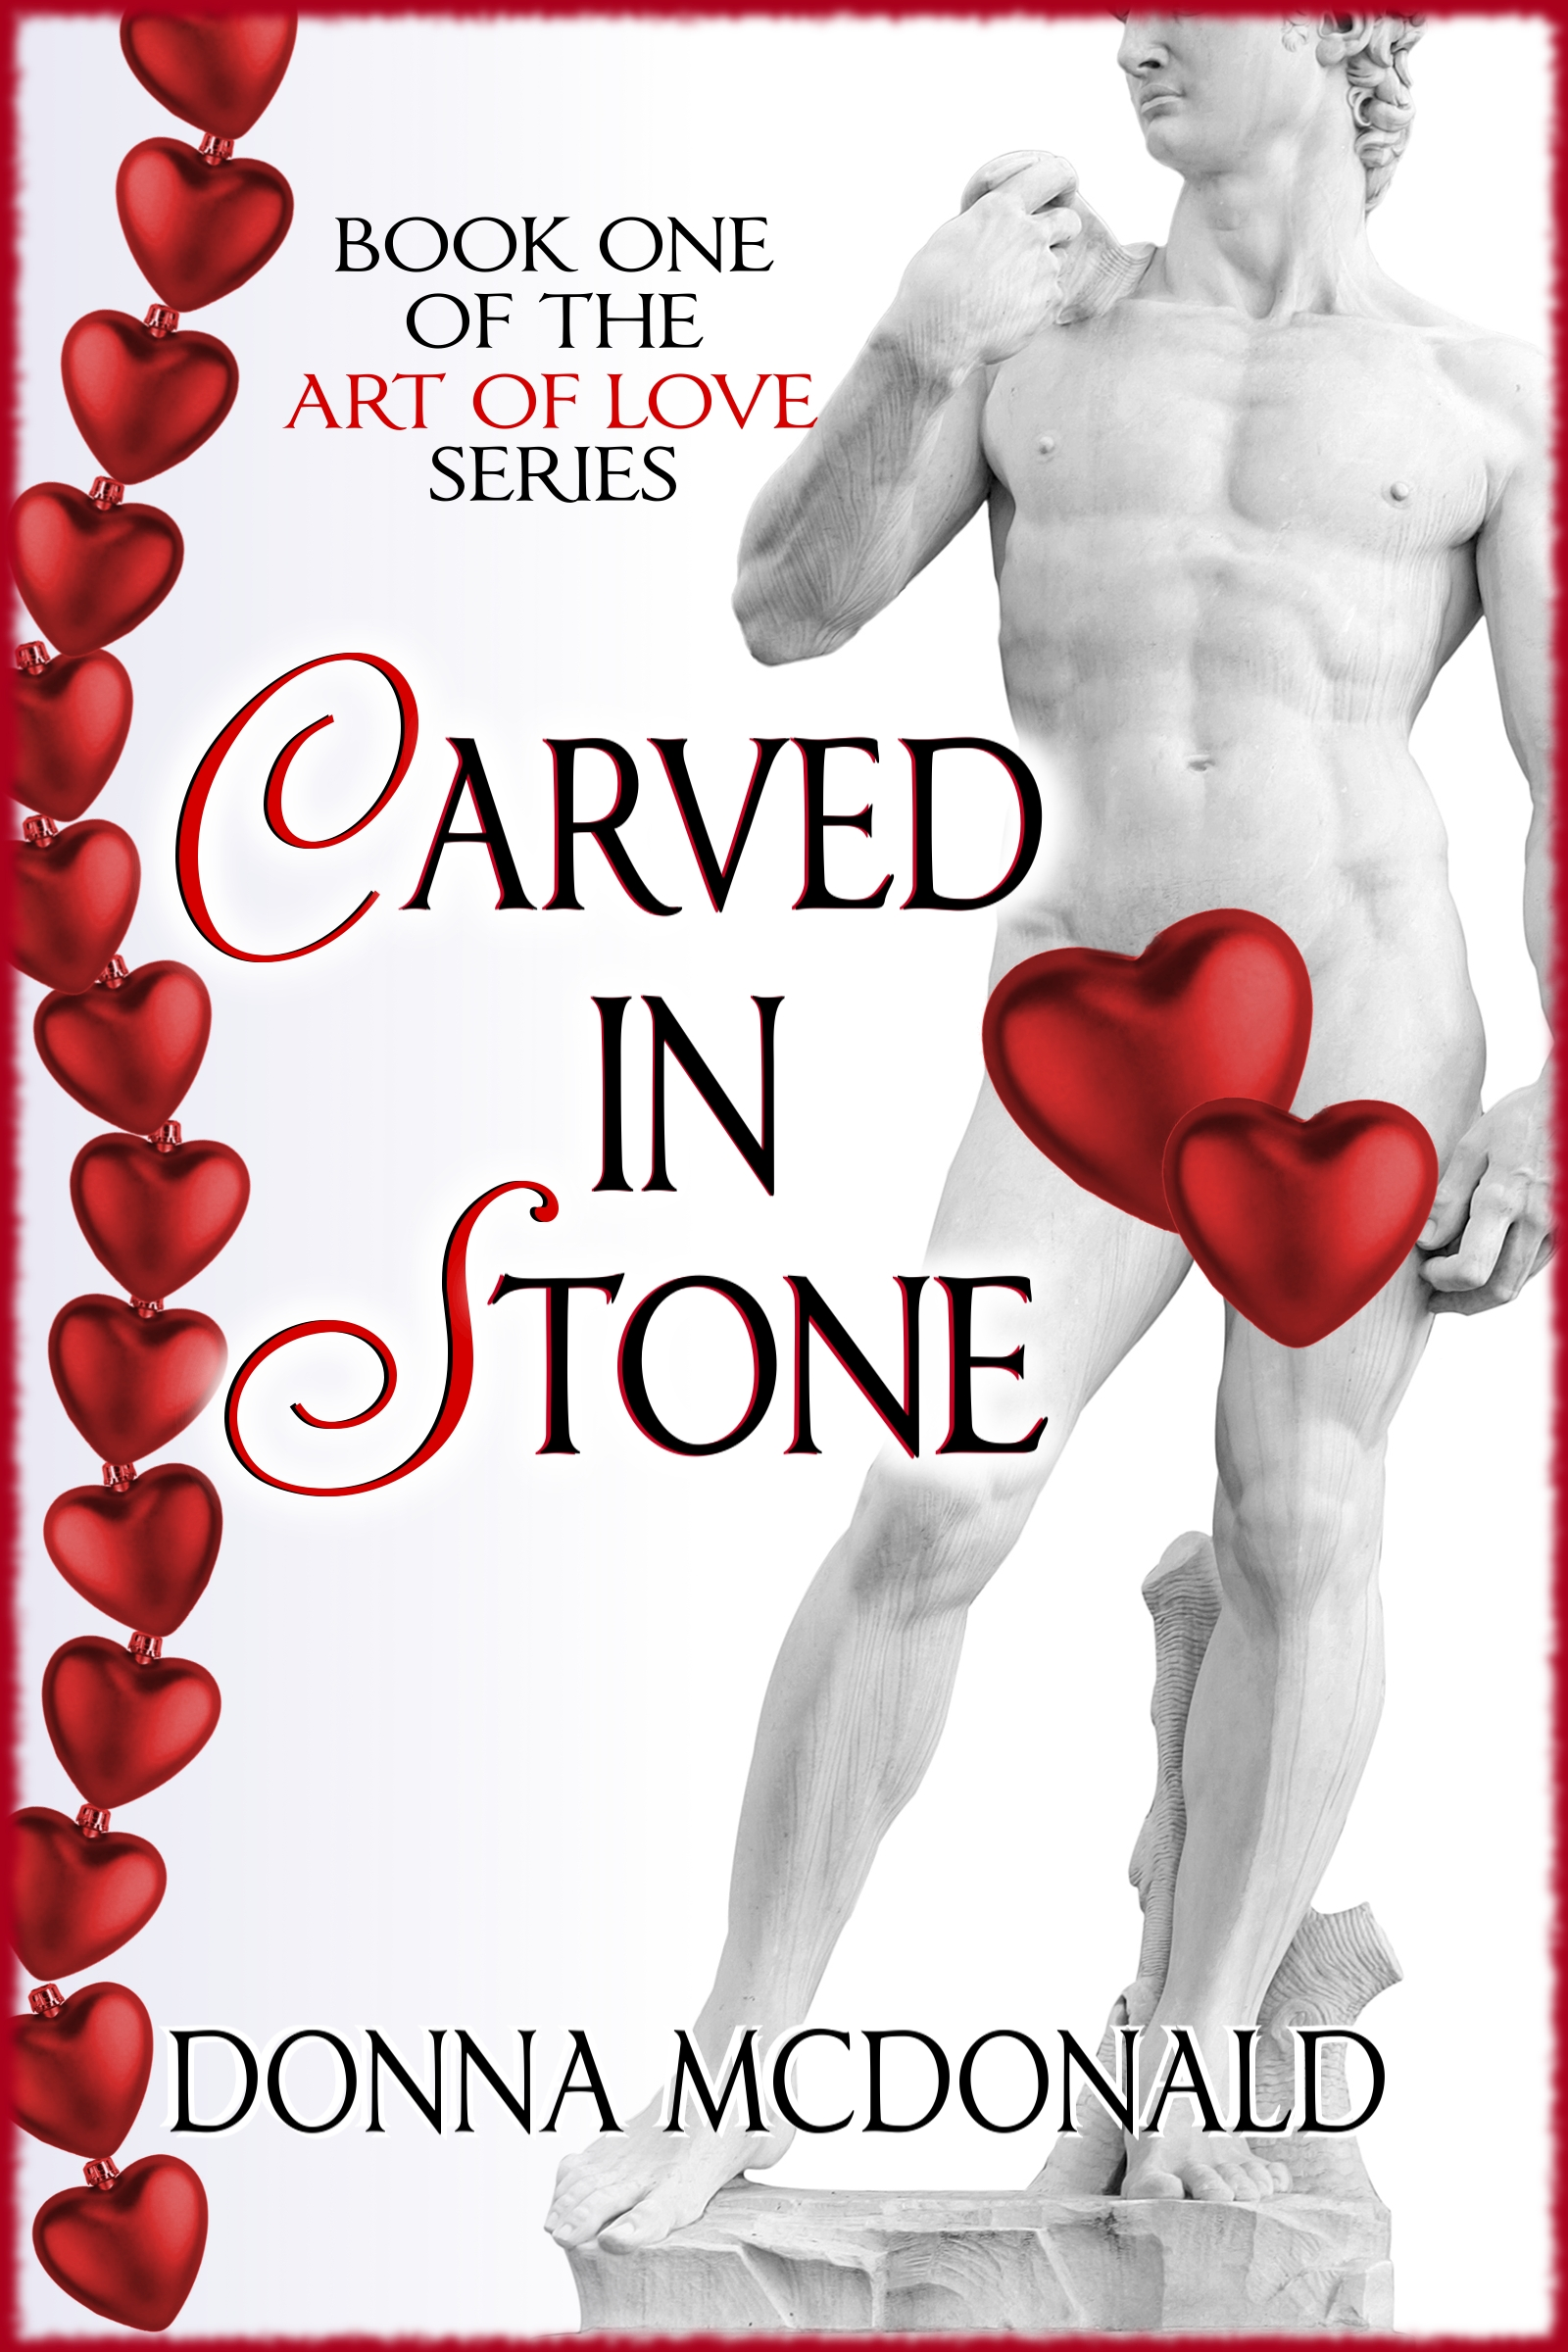 Carved In Stone (Contemporary Romance and Humor)